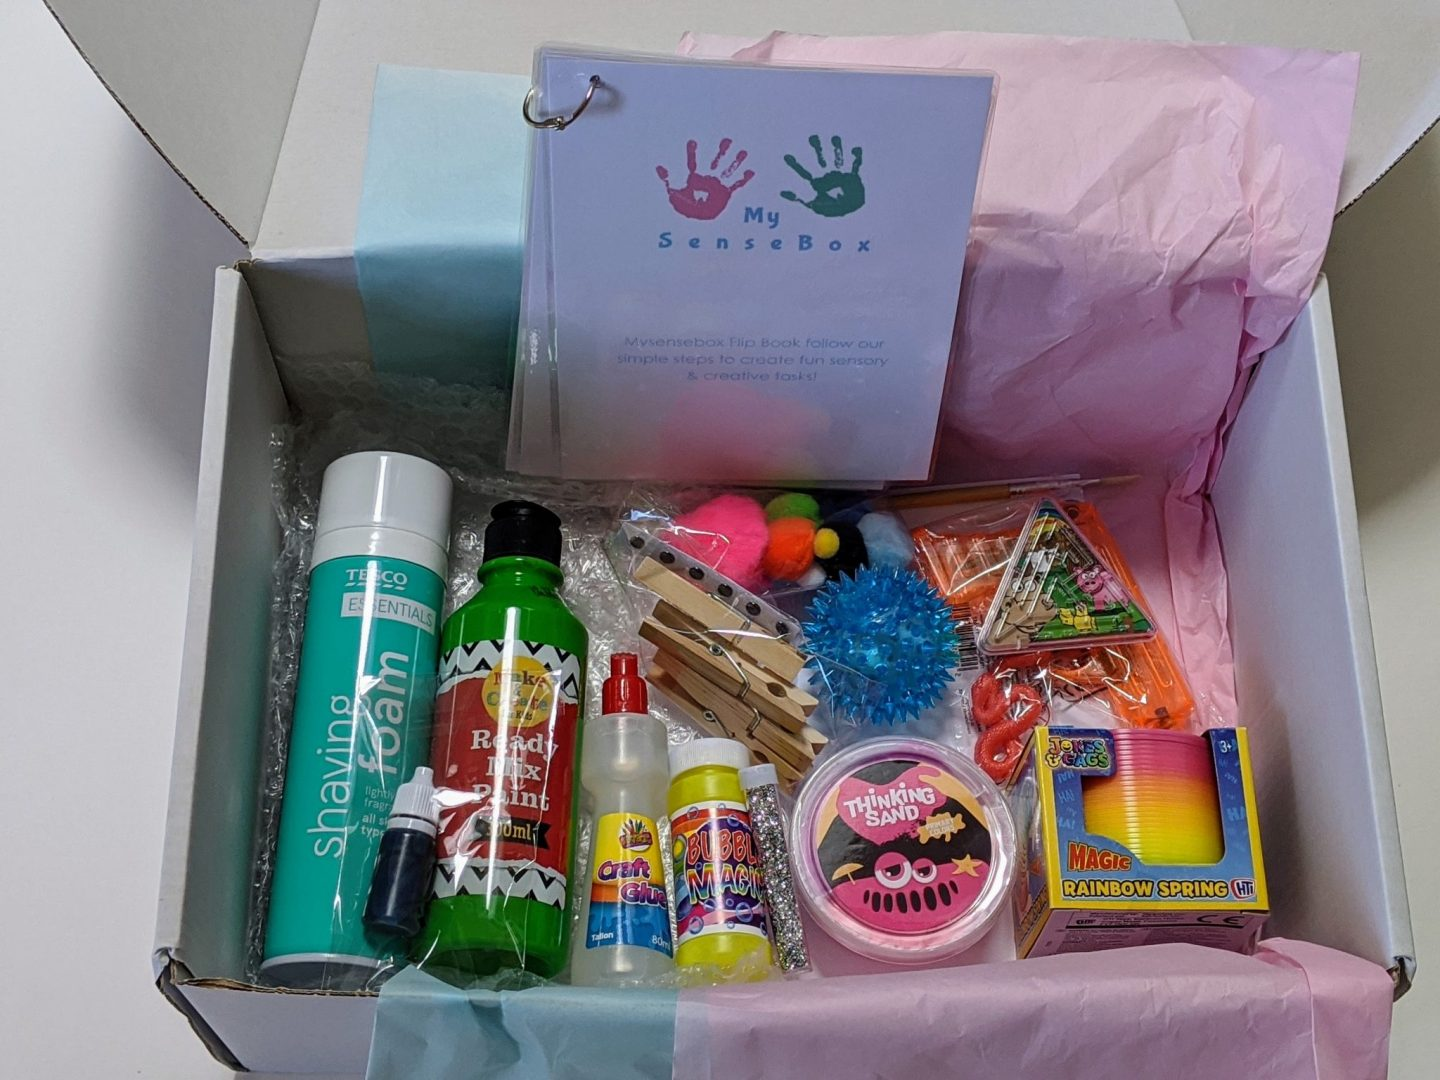 Mysensebox